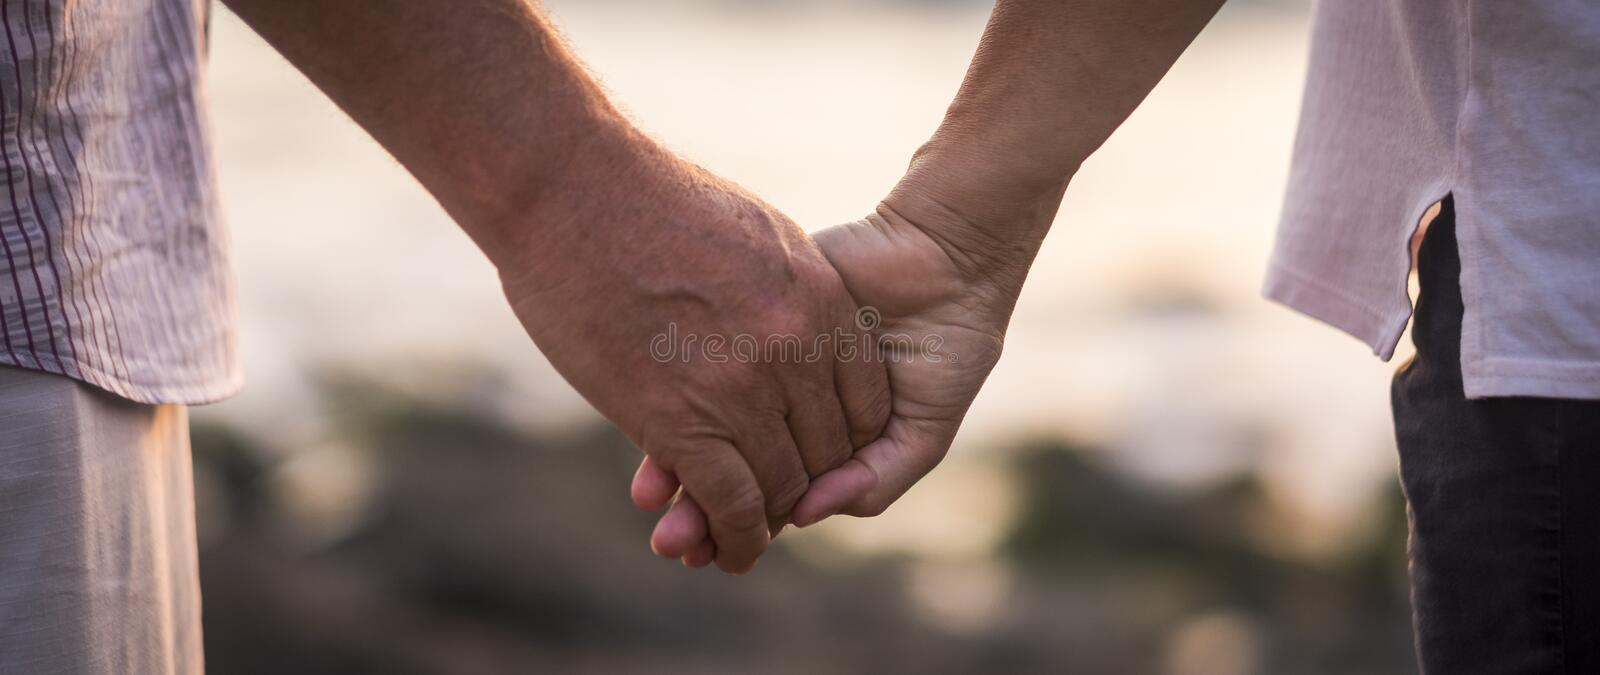 Valentine`s day love over time concept with hands of man and woman mature old people aged taking together each other with royalty free stock photography